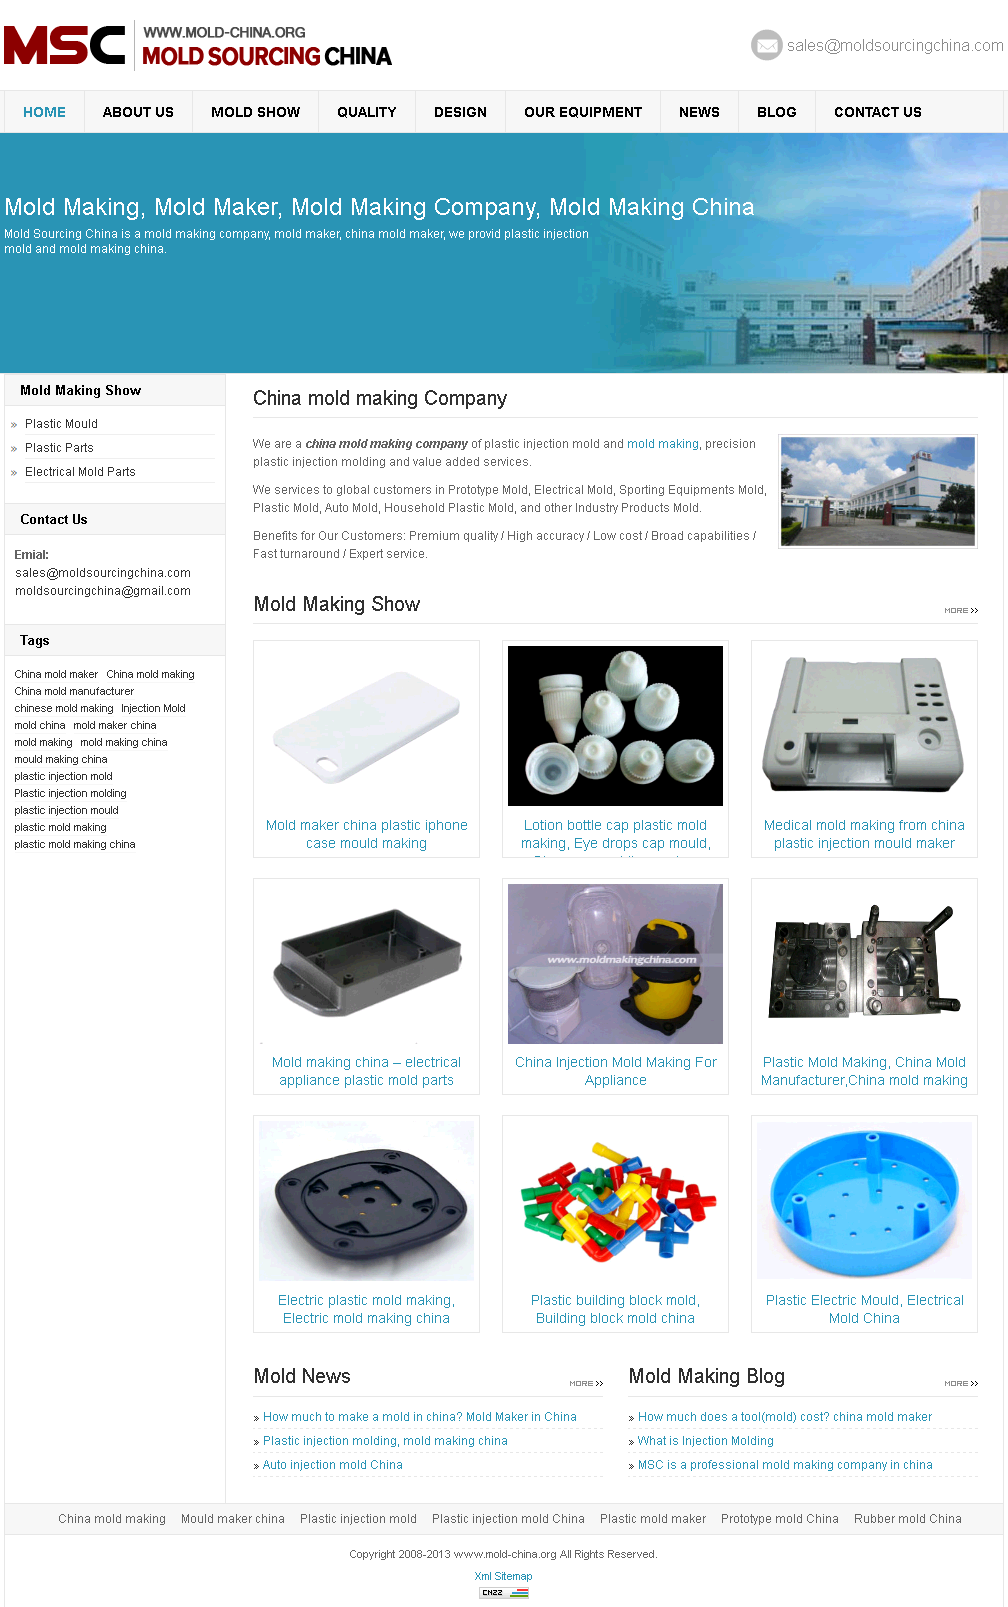 Mold maker website 2010